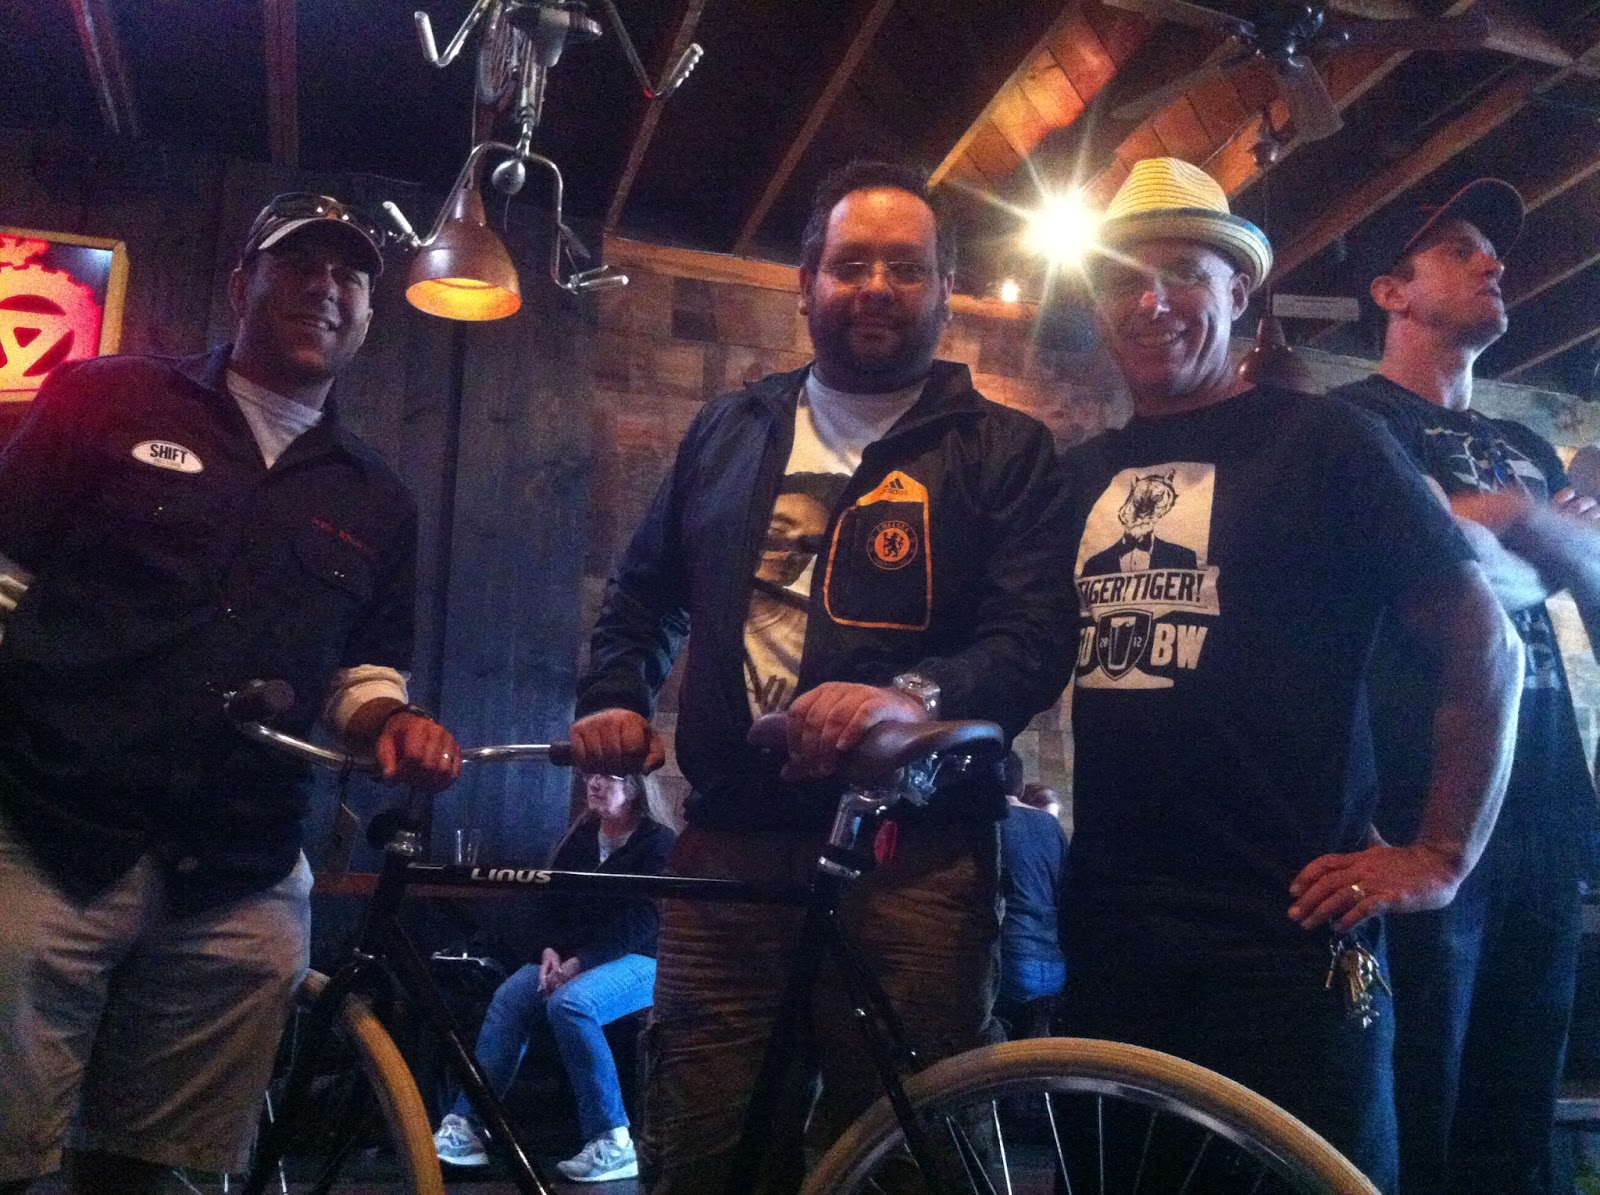 Blind Lady Ale House Townie Ride And Linus Roadster Raffle